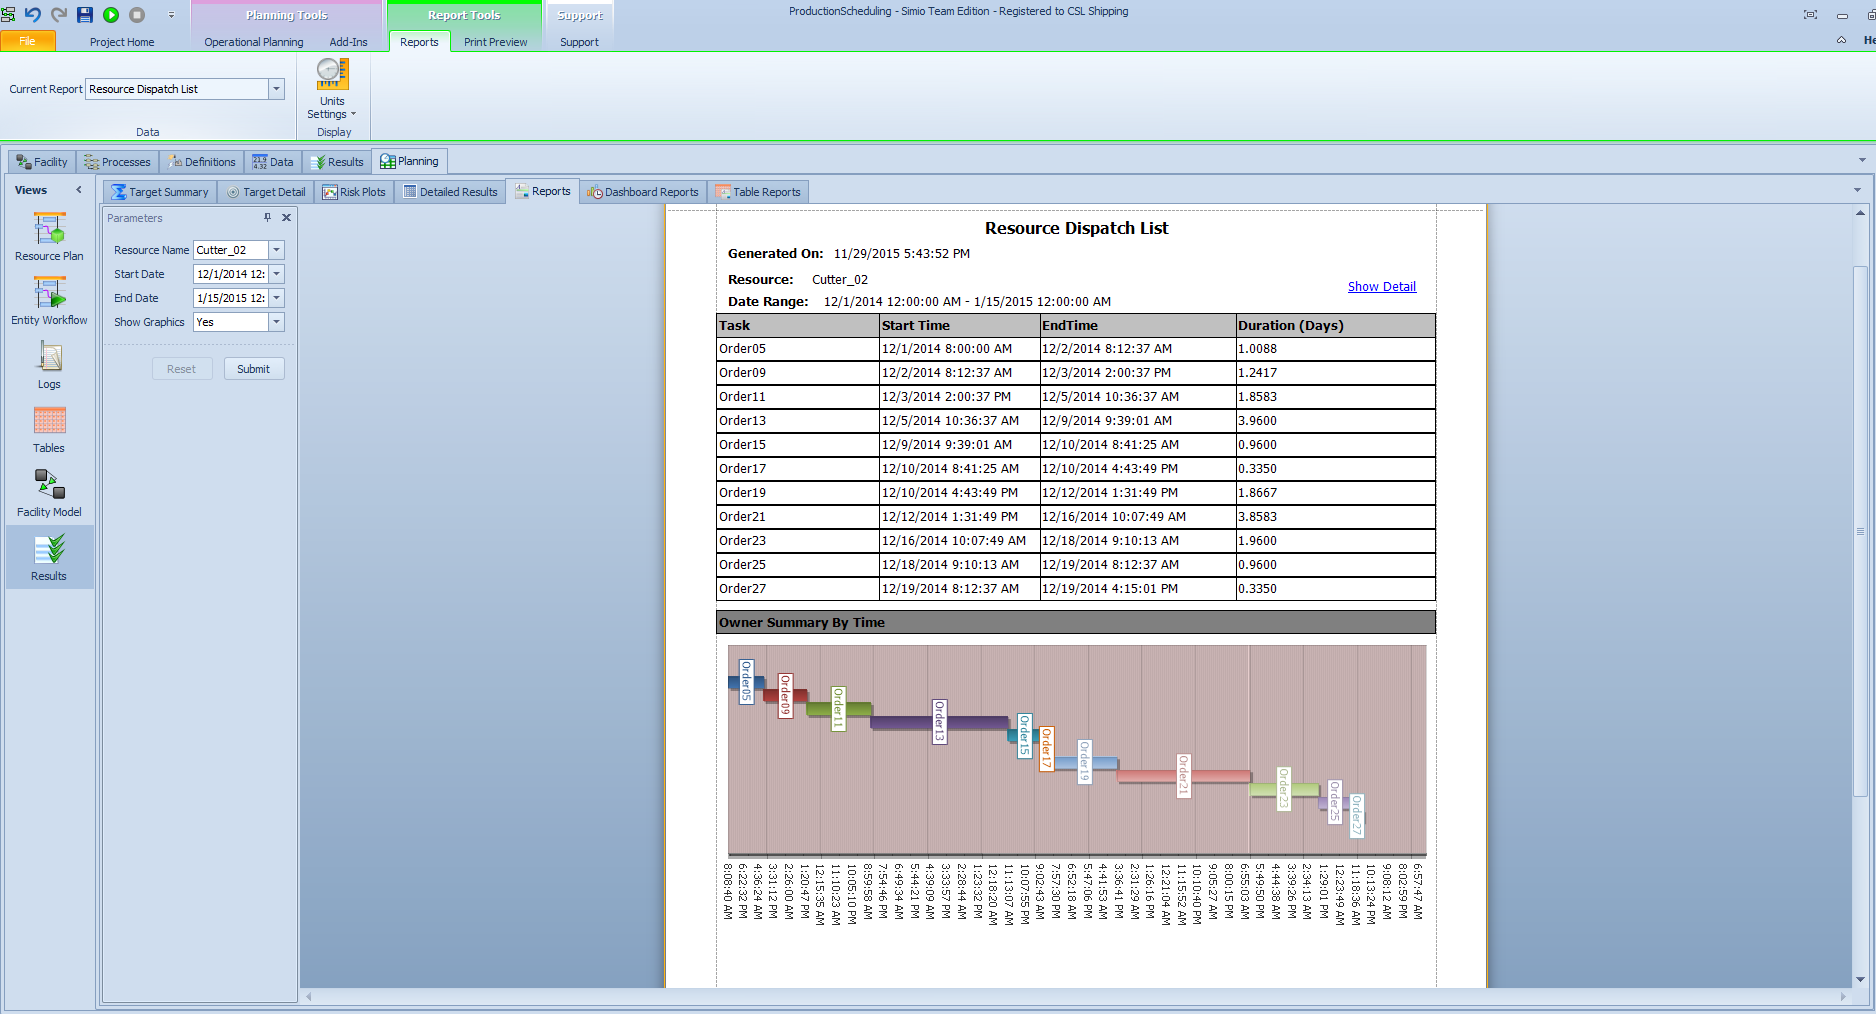 Planning and Scheduling - APS Production Reporting with Simio